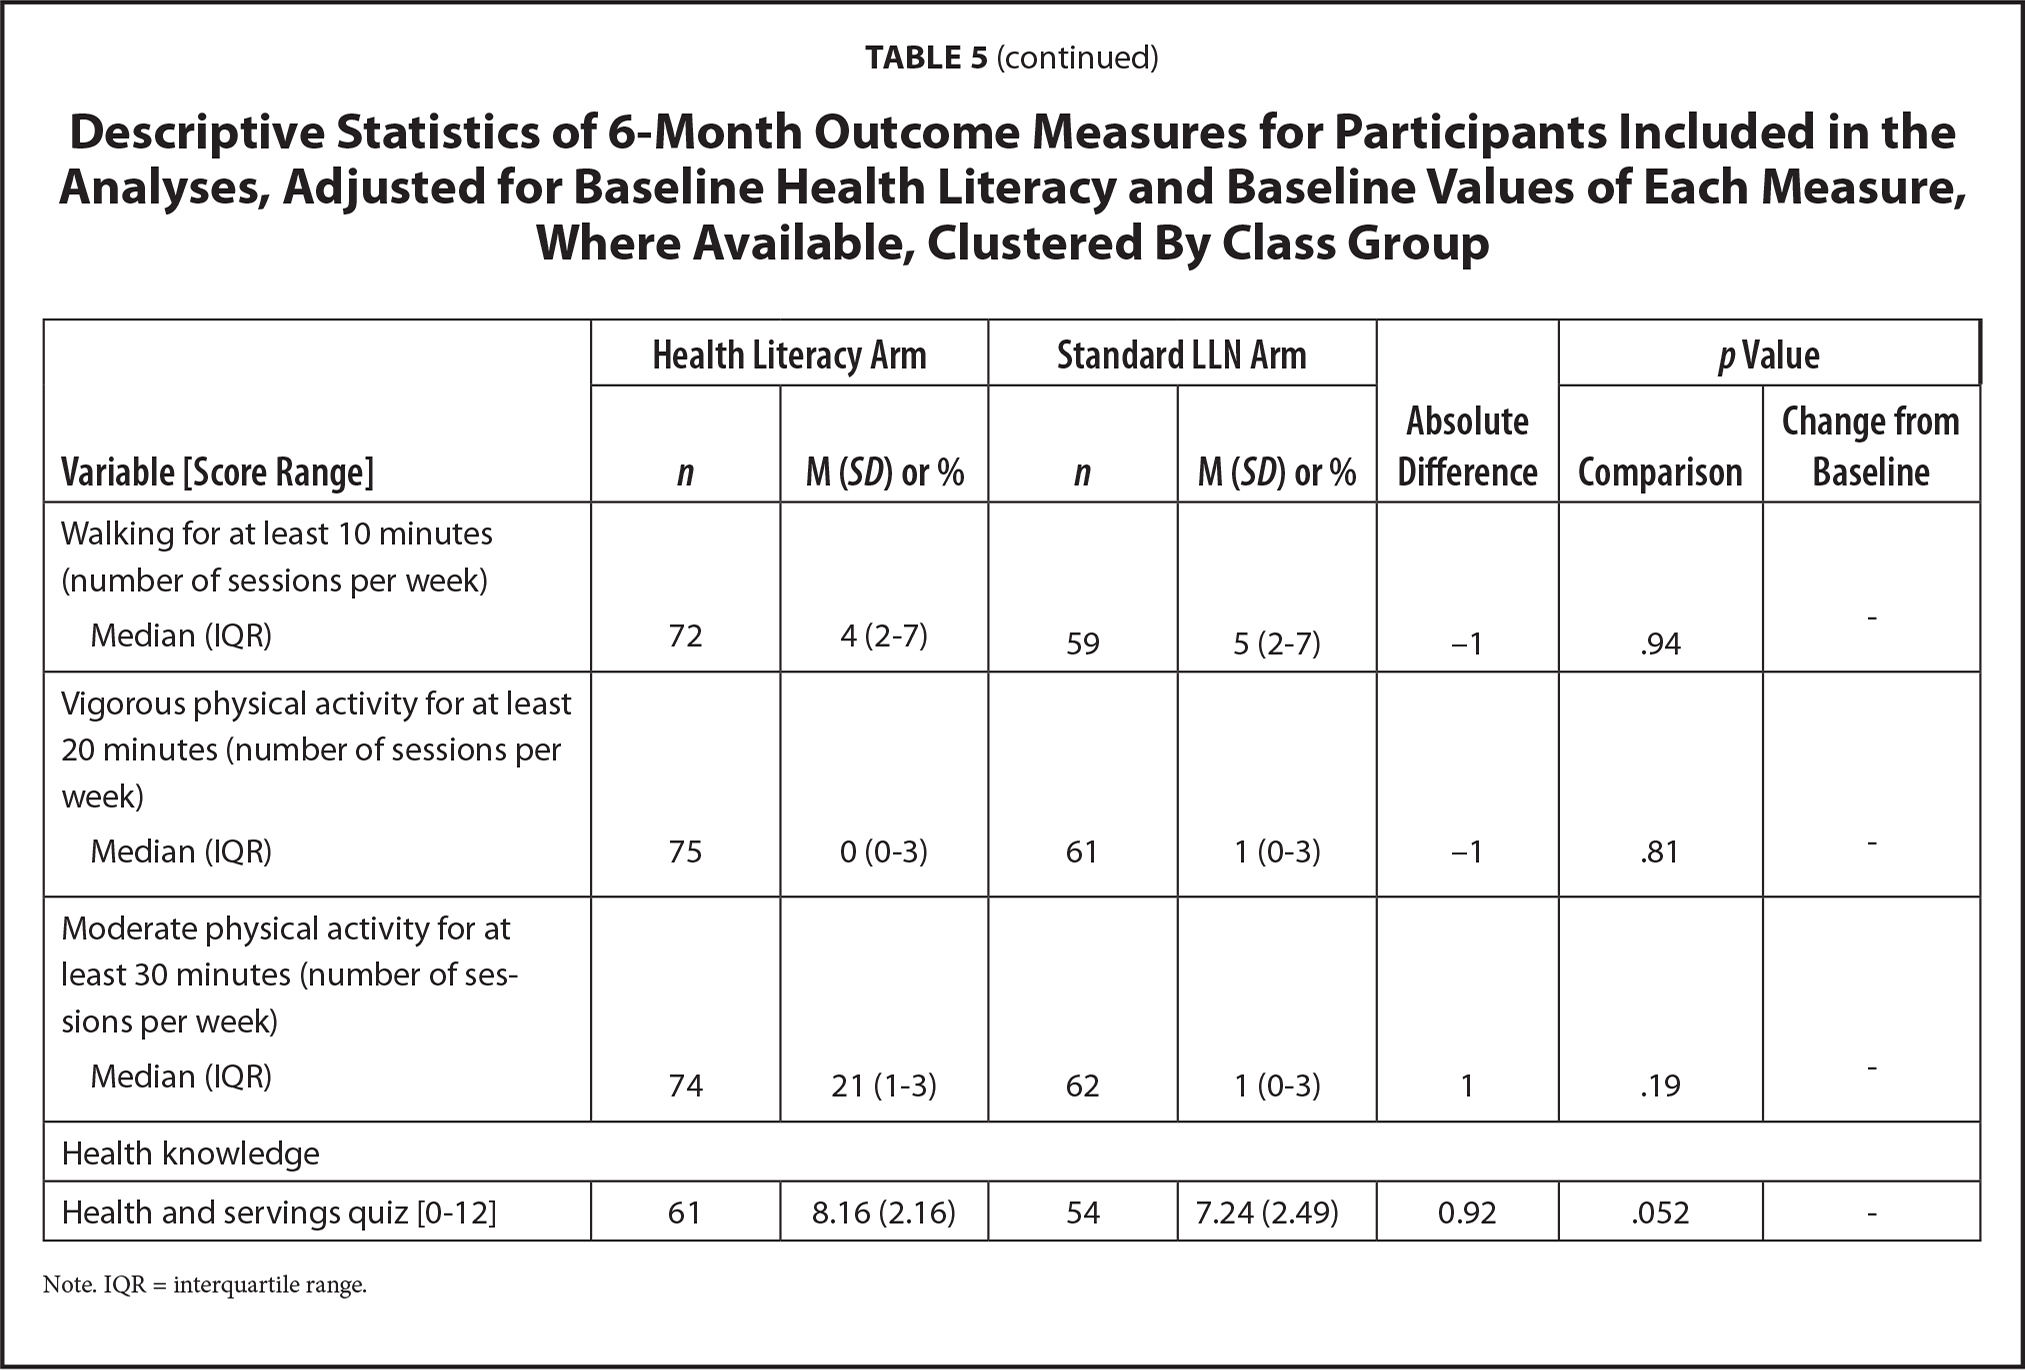 Descriptive Statistics of 6-Month Outcome Measures for Participants Included in the Analyses, Adjusted for Baseline Health Literacy and Baseline Values of Each Measure, Where Available, Clustered By Class Group